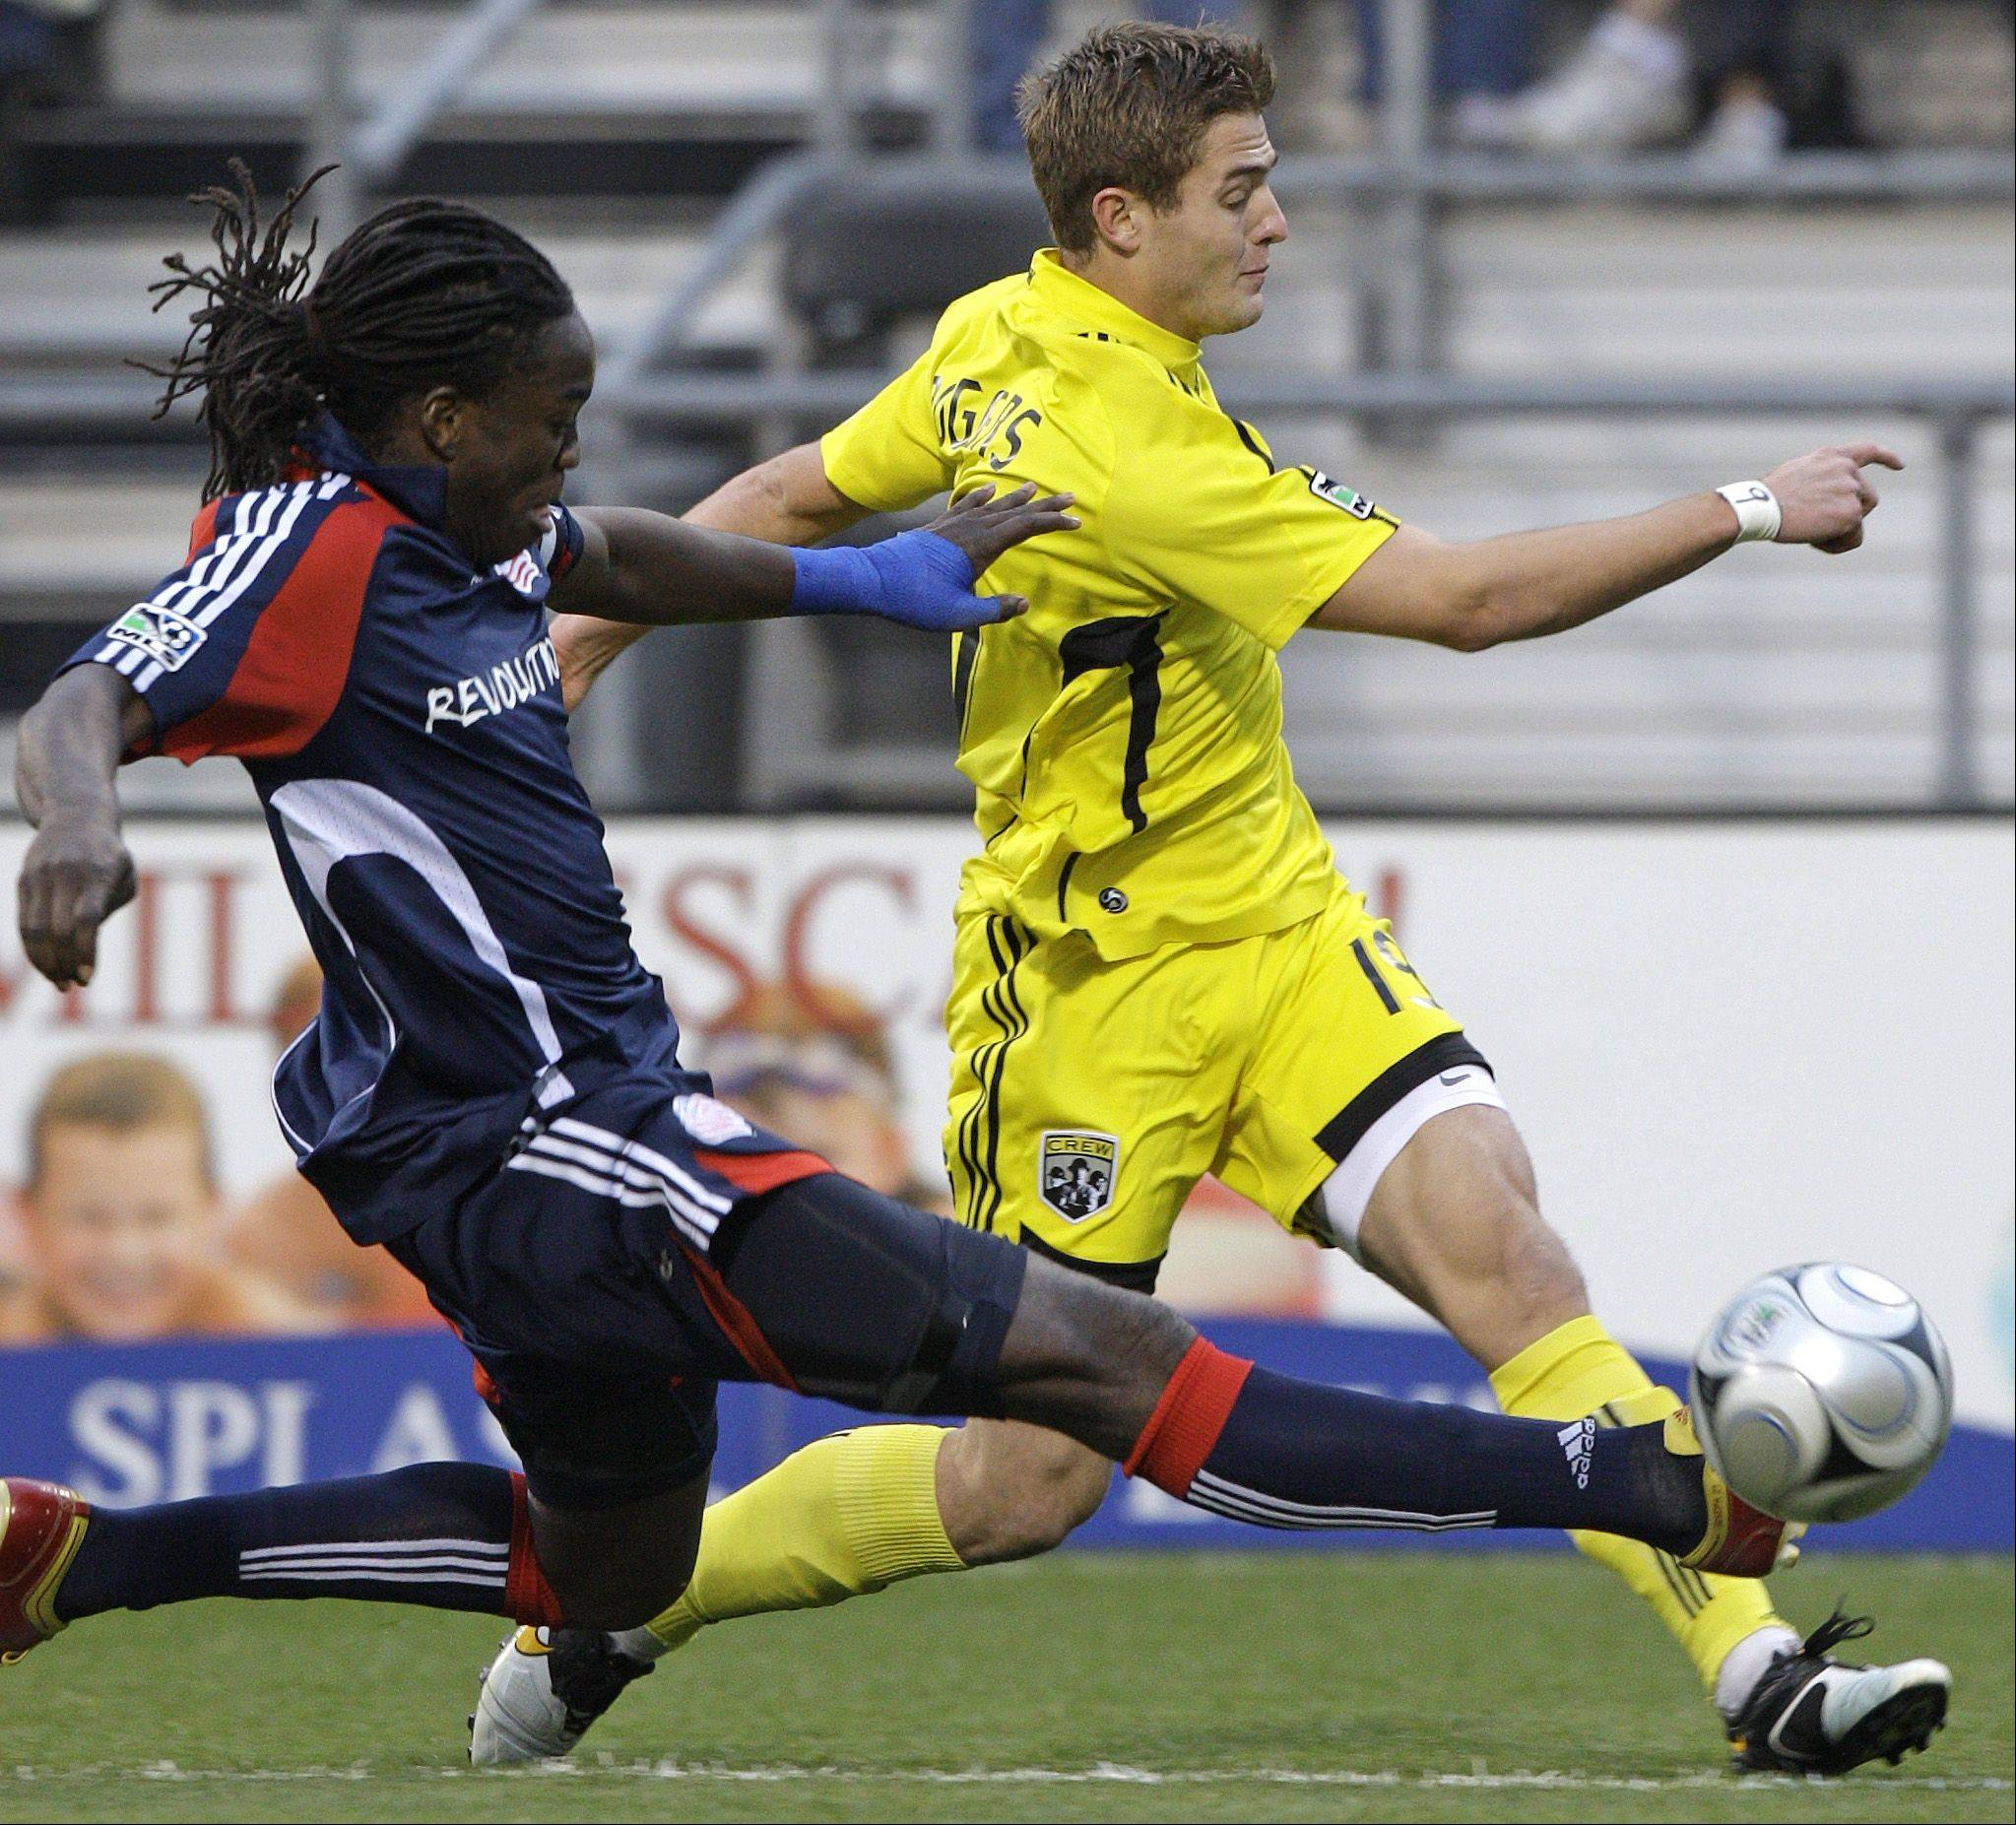 New England Revolution's Shalrie Joseph, left, tries to clear the ball past Columbus Crew's Robbie Rogers during the first half of an MLS soccer game Sunday, Oct. 25, 2009, in Columbus, Ohio. (AP Photo/Jay LaPrete)